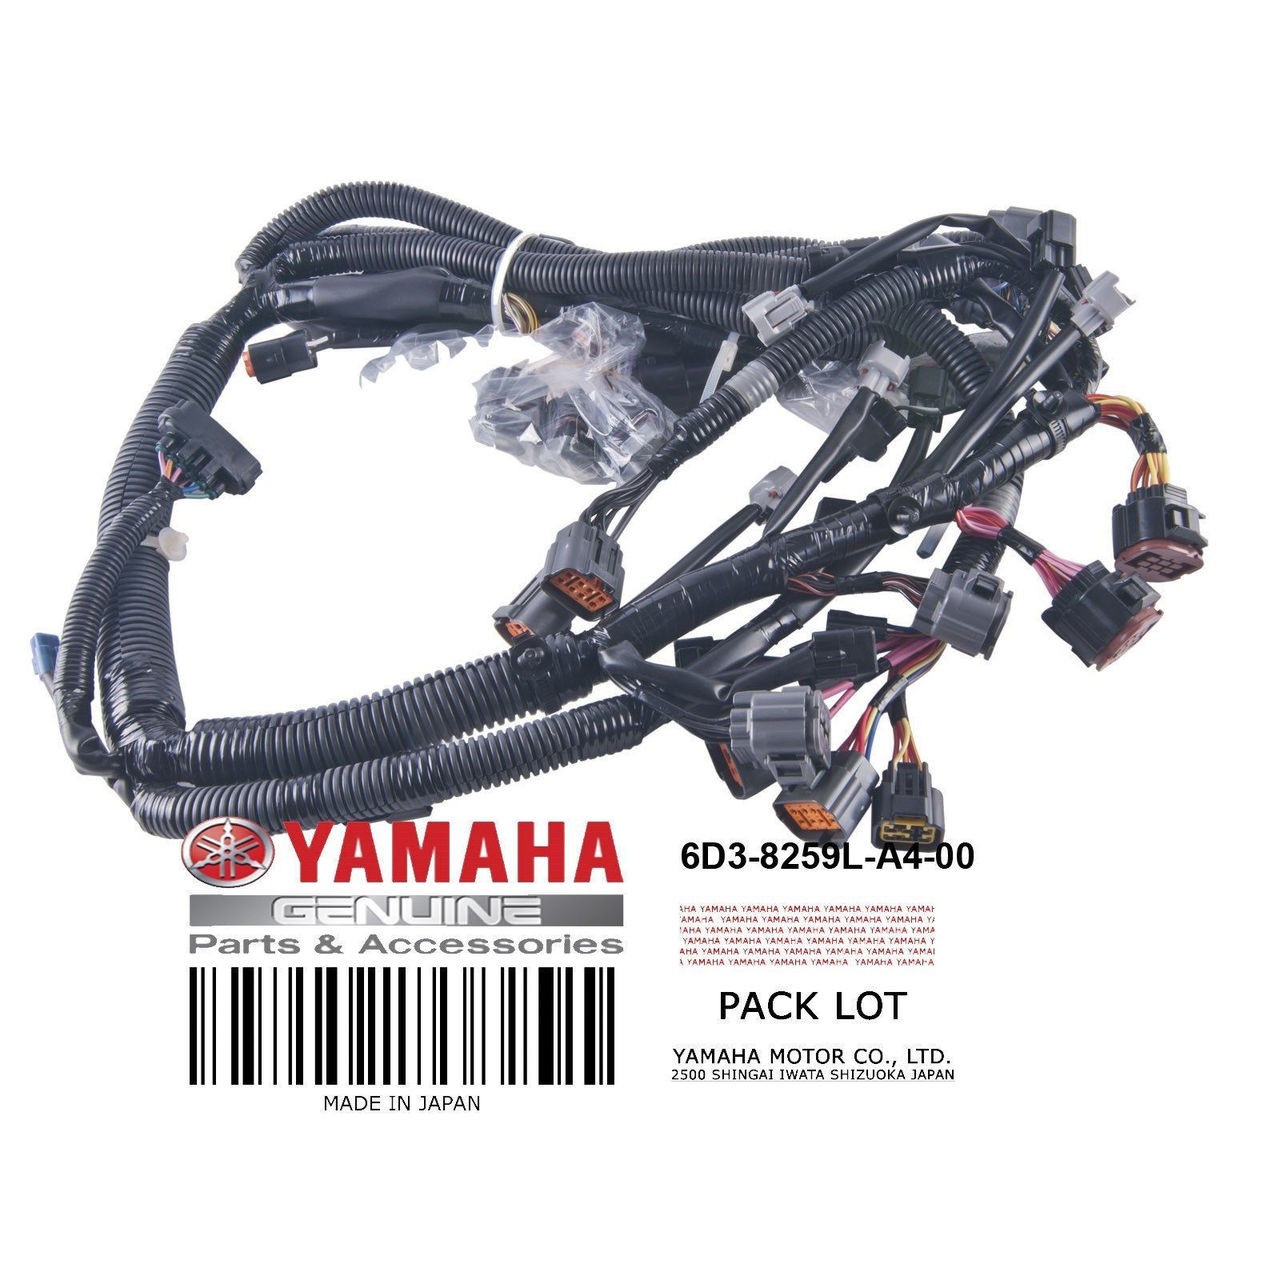 YAMAHA OEM Wire Harness Assembly 6D3-8259L-A4-00 2005-2009 VX Deluxe Sport  Cruiser PWC